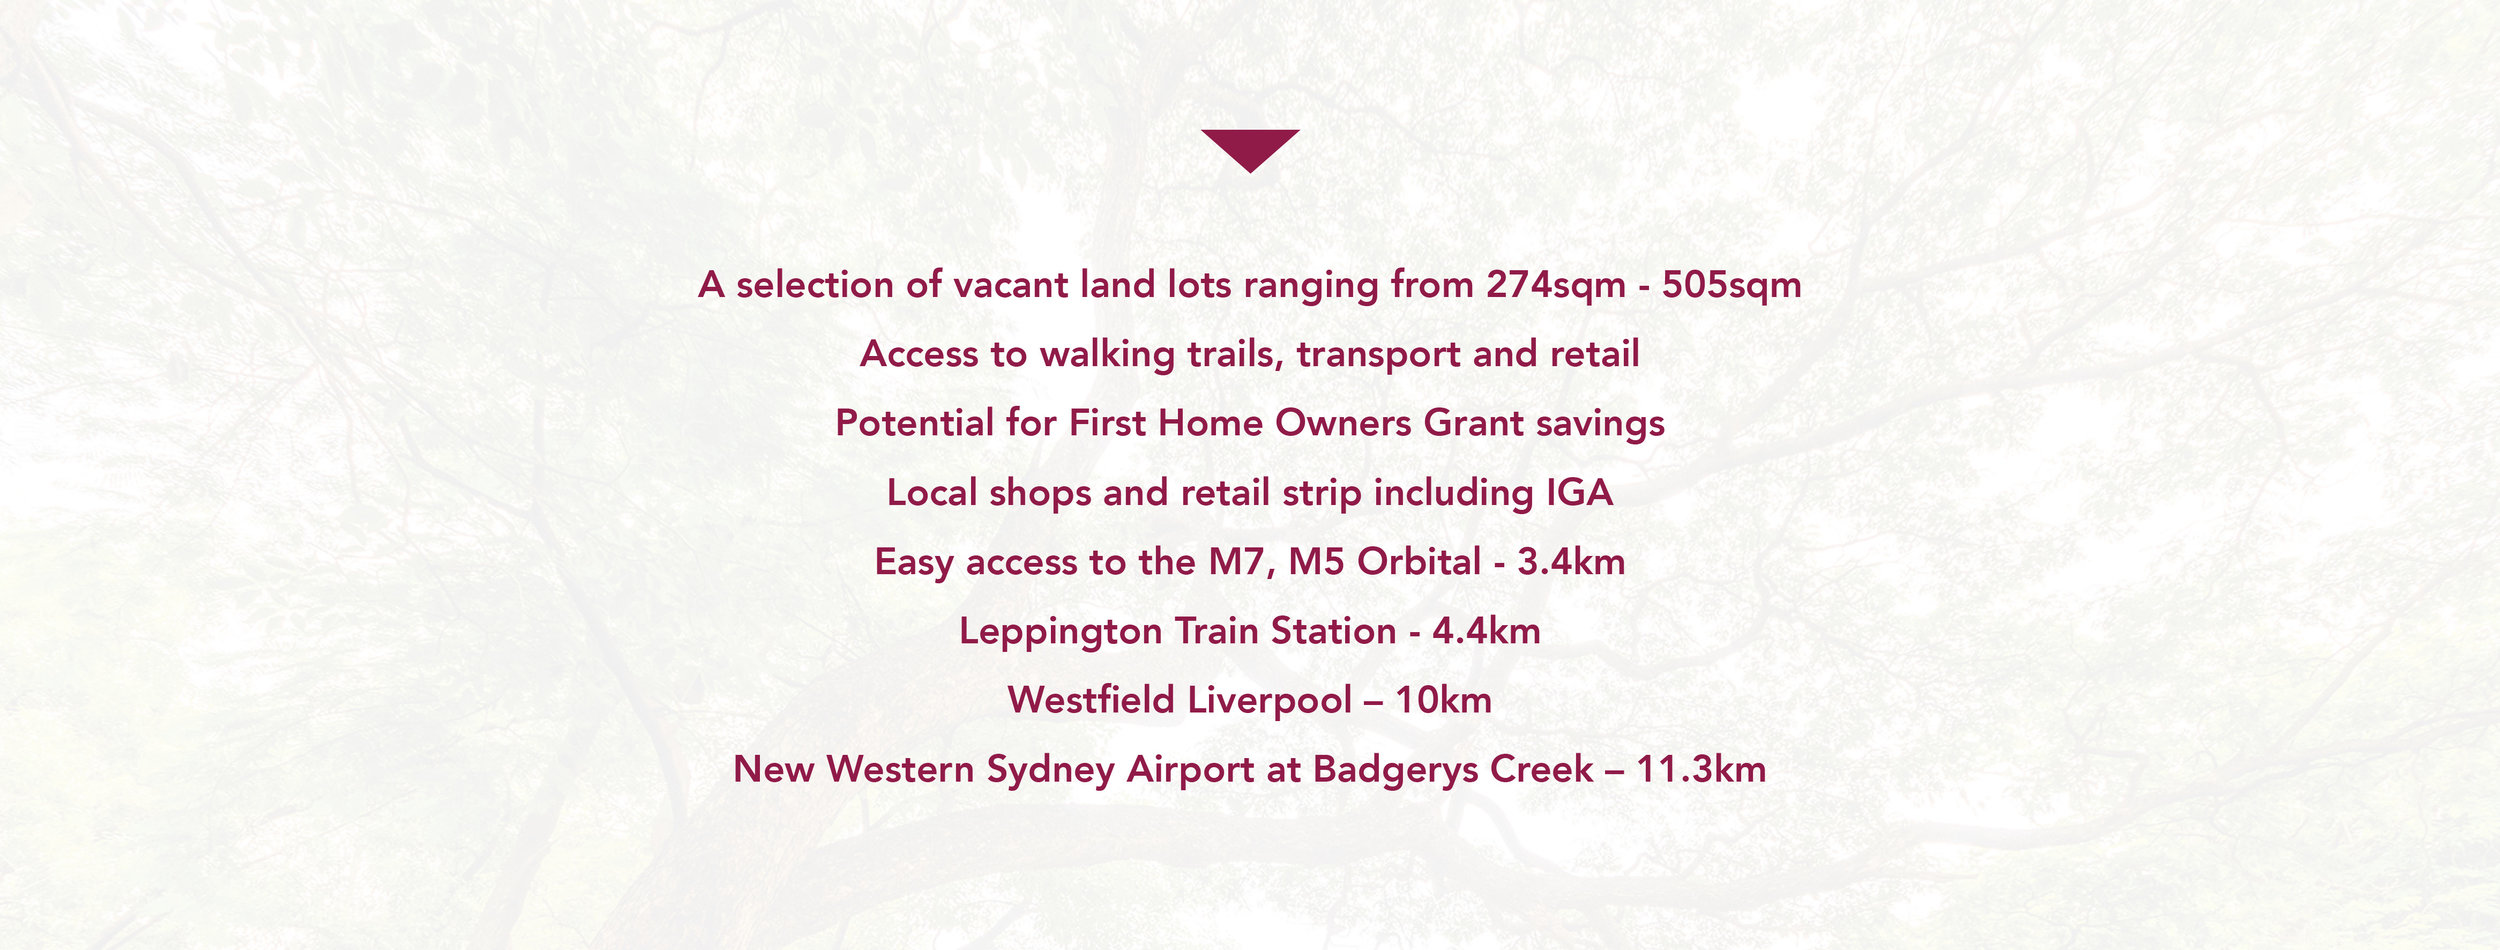 Located on the border of the Western Sydney Parklands and Middleton Grange